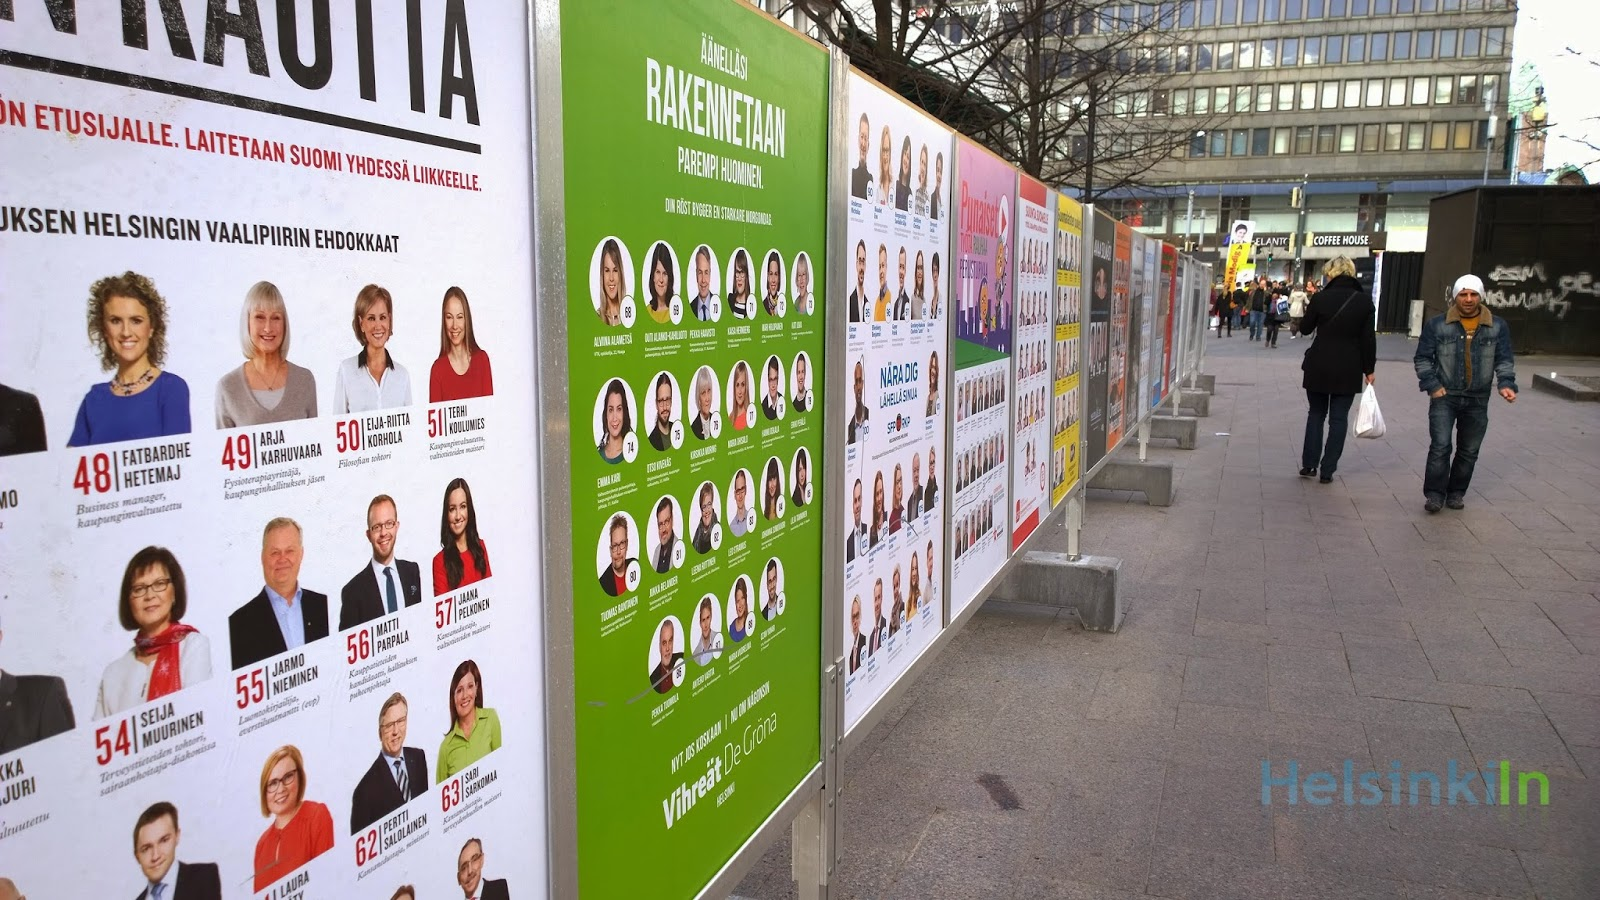 party advertisements in the city center